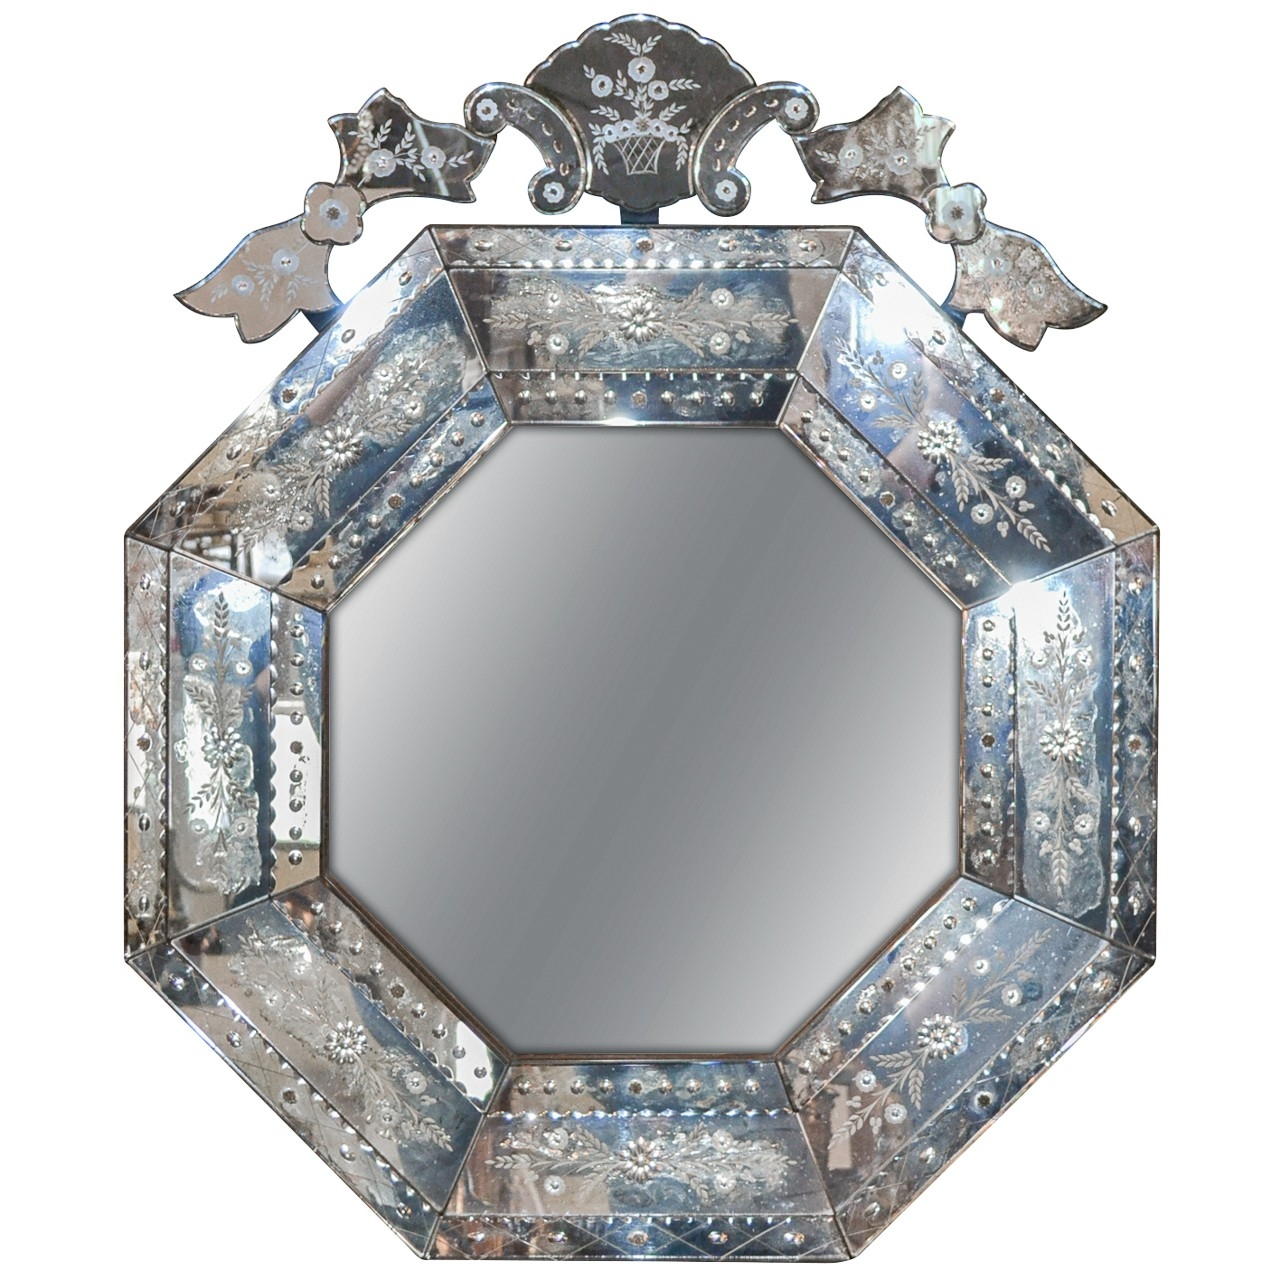 Italian Venetian Etched Glass Mirror Legacy Antiques Within Venetian Etched Glass Mirror (Image 11 of 15)